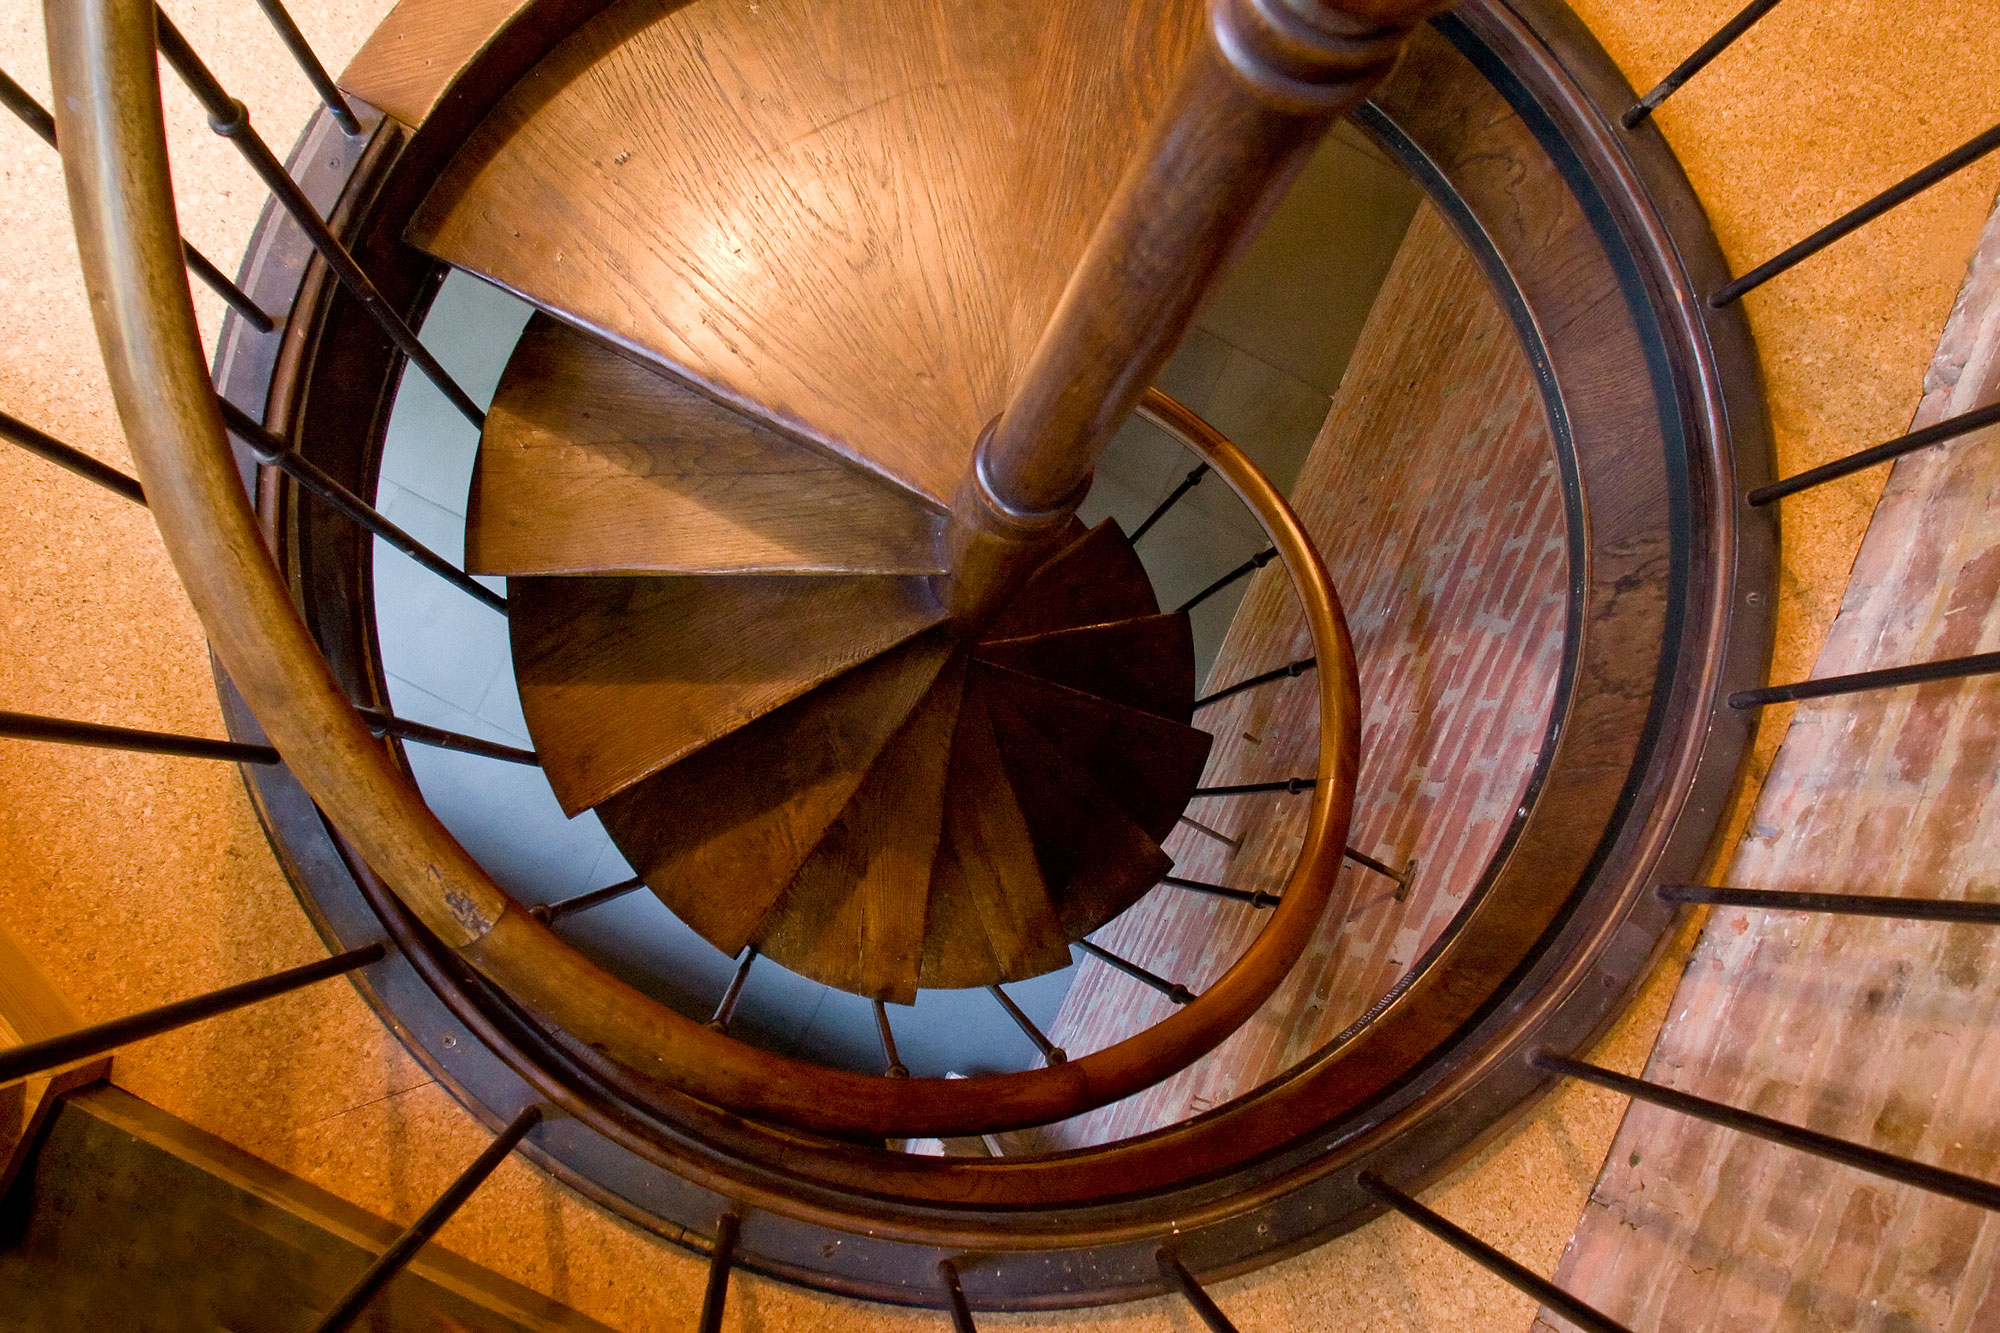 West Village Brownstone - Parlor Level Library Spiral Stair